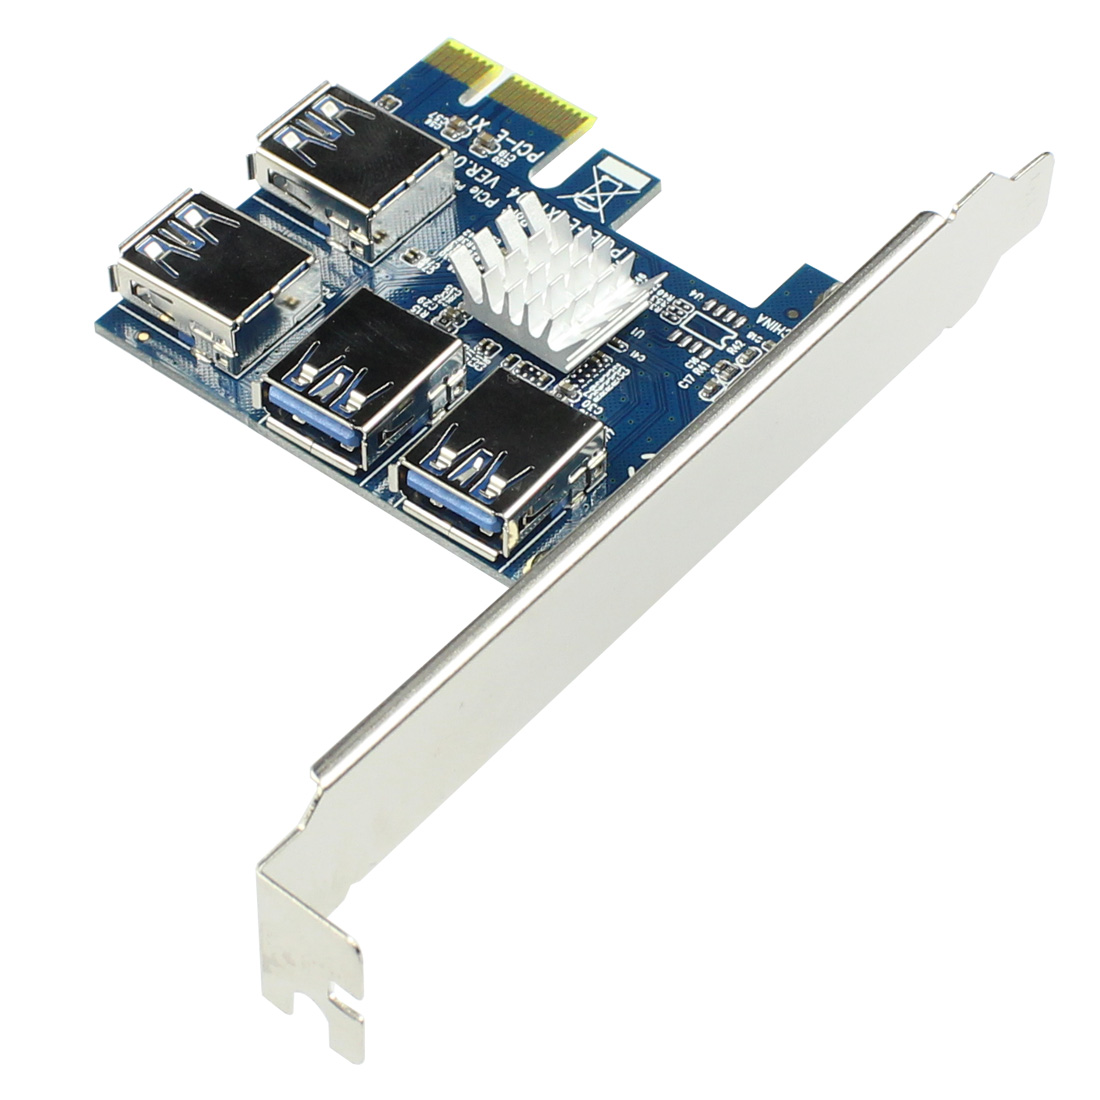 PCIE PCI-E PCI Express Riser Card 1x to 16x 1 to 4 USB 3.0 Slot Multiplier Hub Adapter For Bitcoin Mining Miner BTC Devices-1